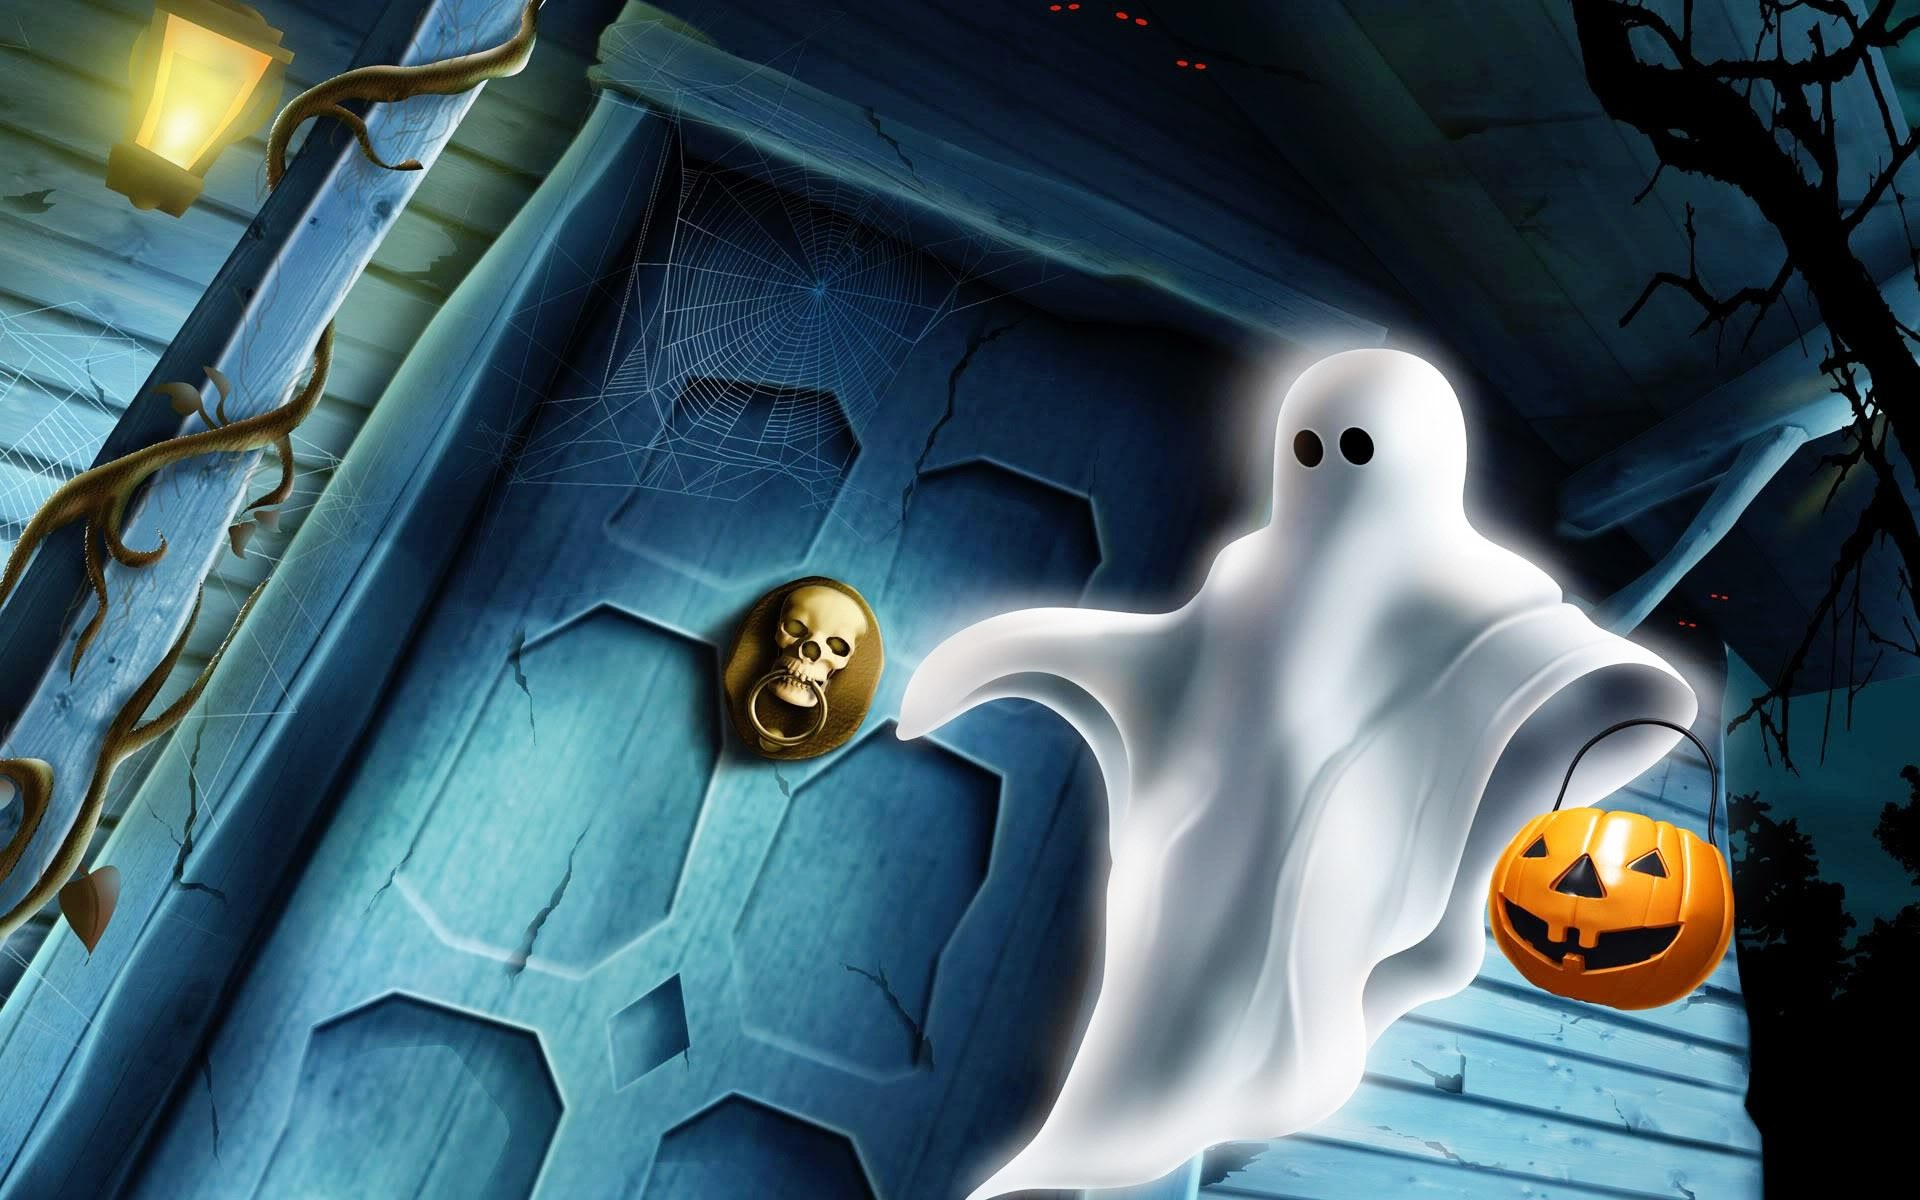 Download Wallpaper Halloween Pumpkin Ghost 1